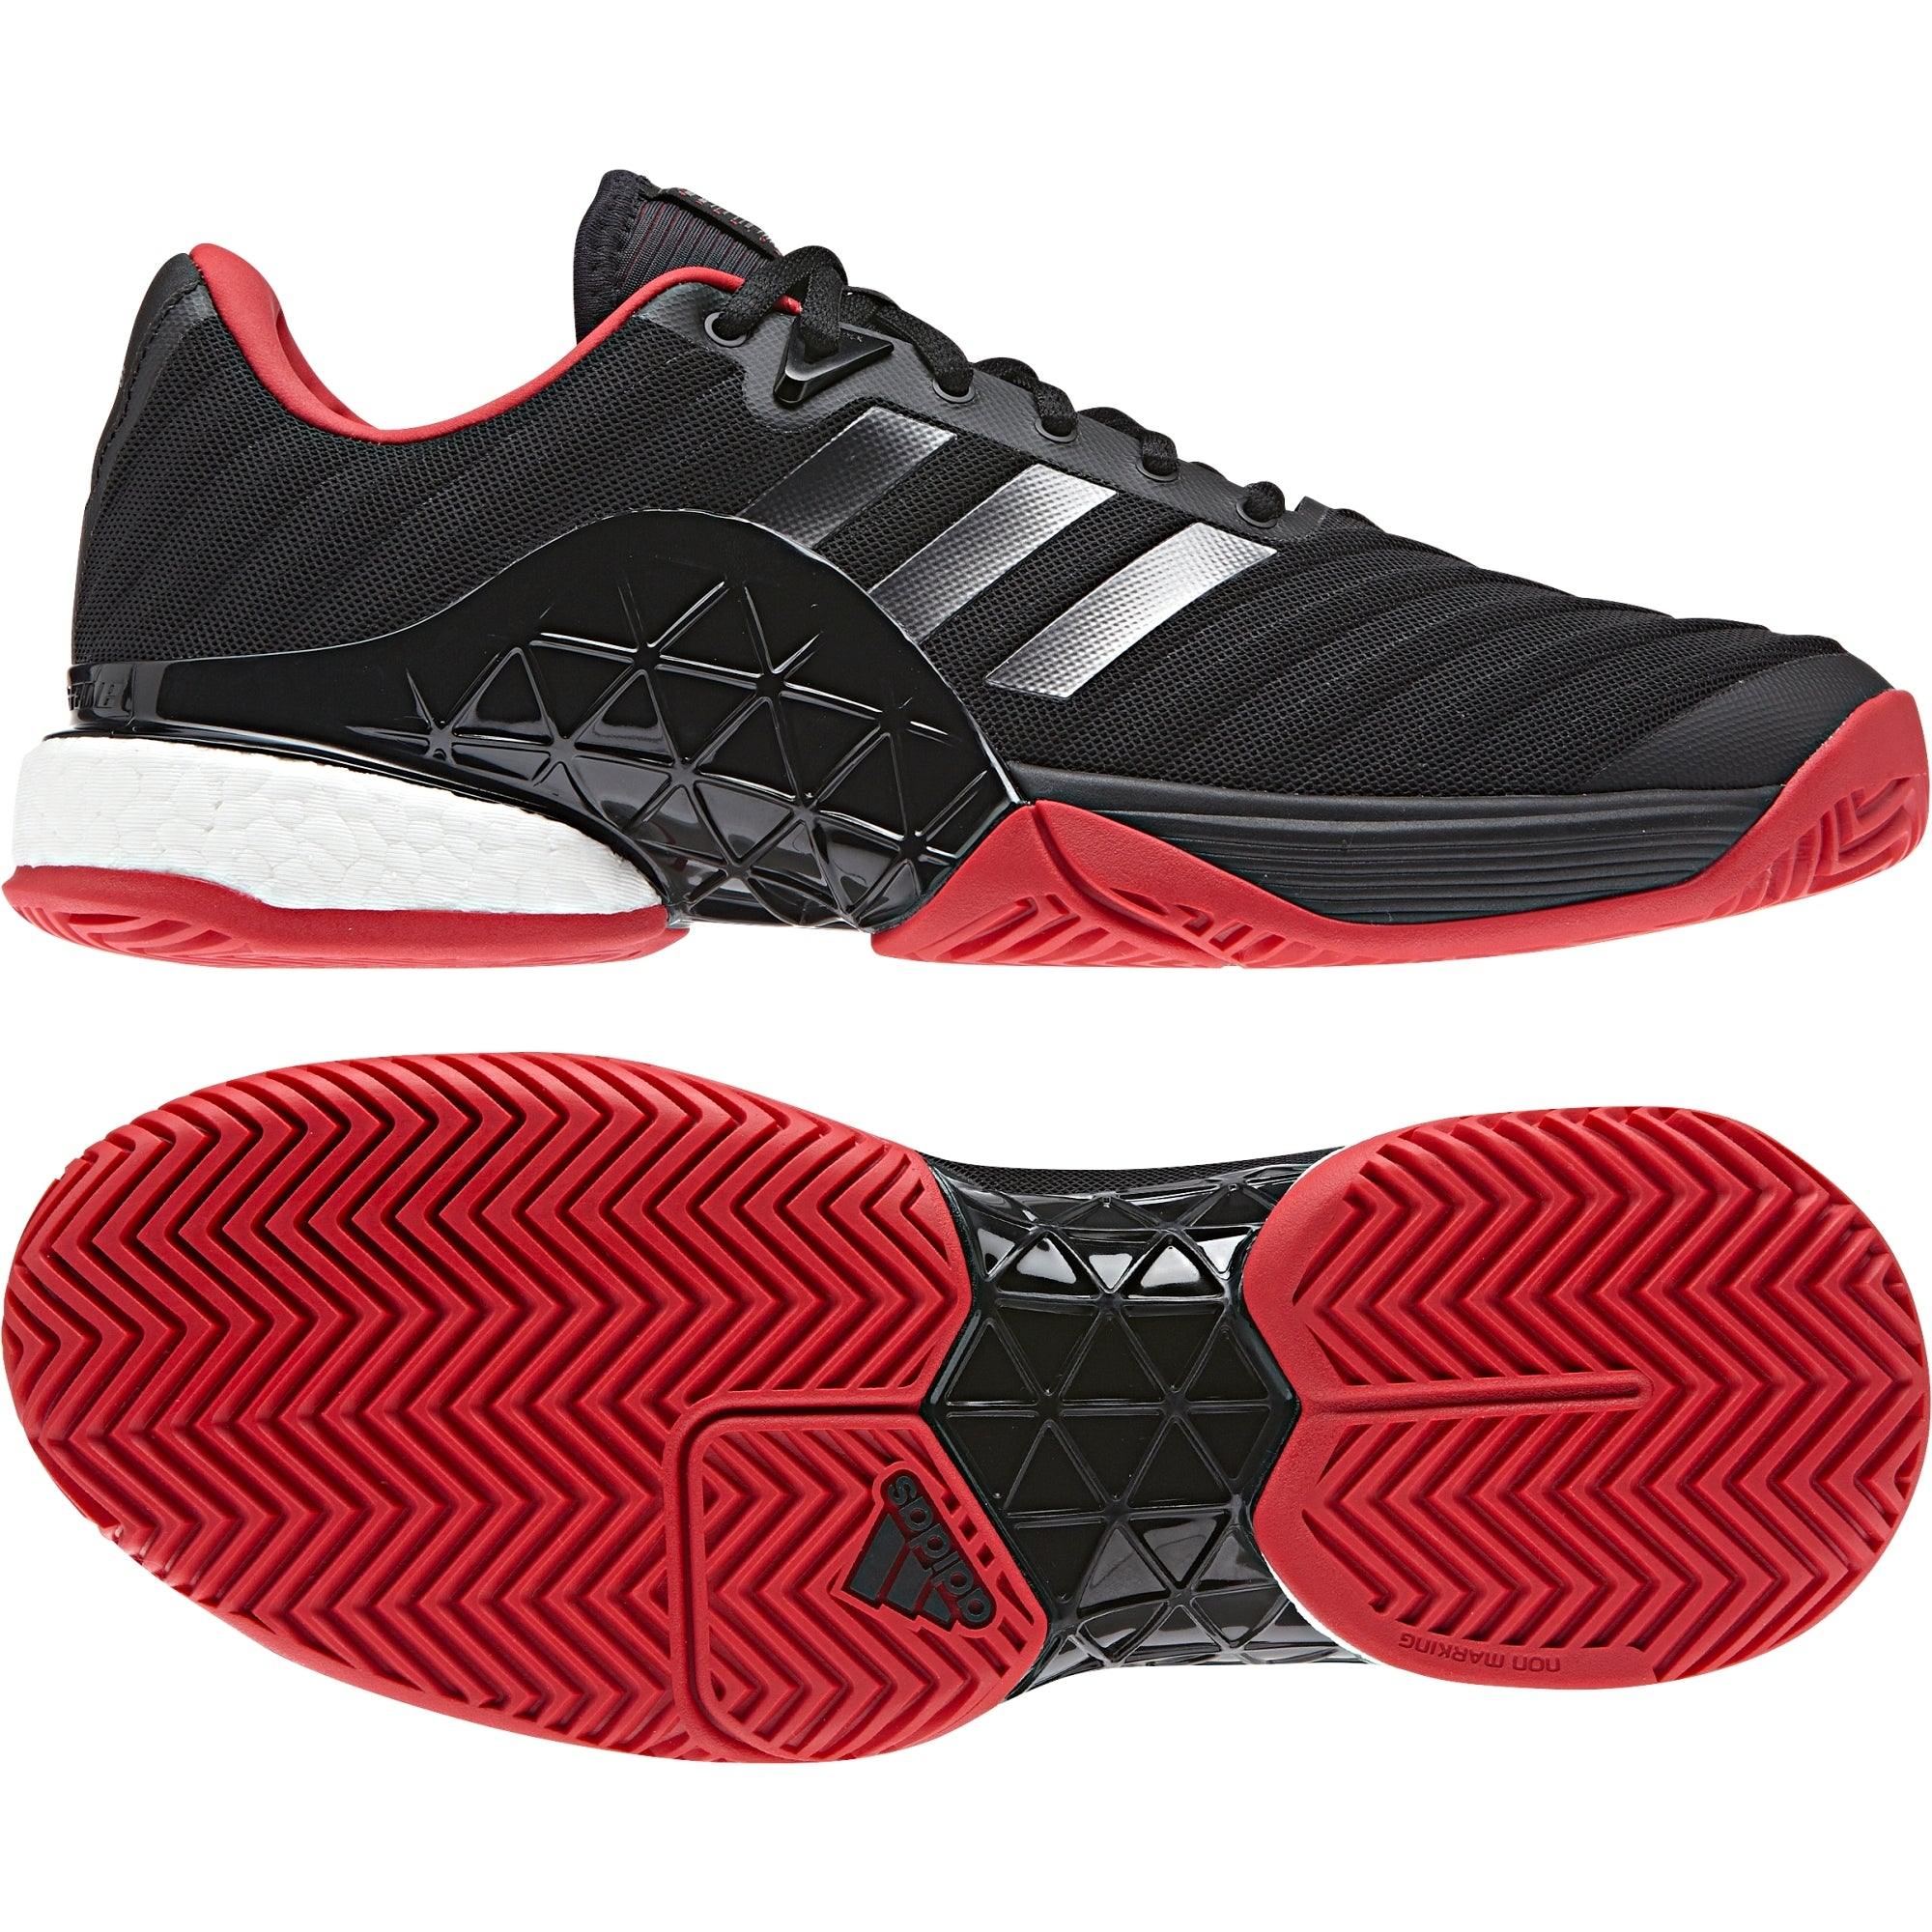 differently ed871 b0675 Men Barricade 2018 Boost Tennis Shoes, Black Red